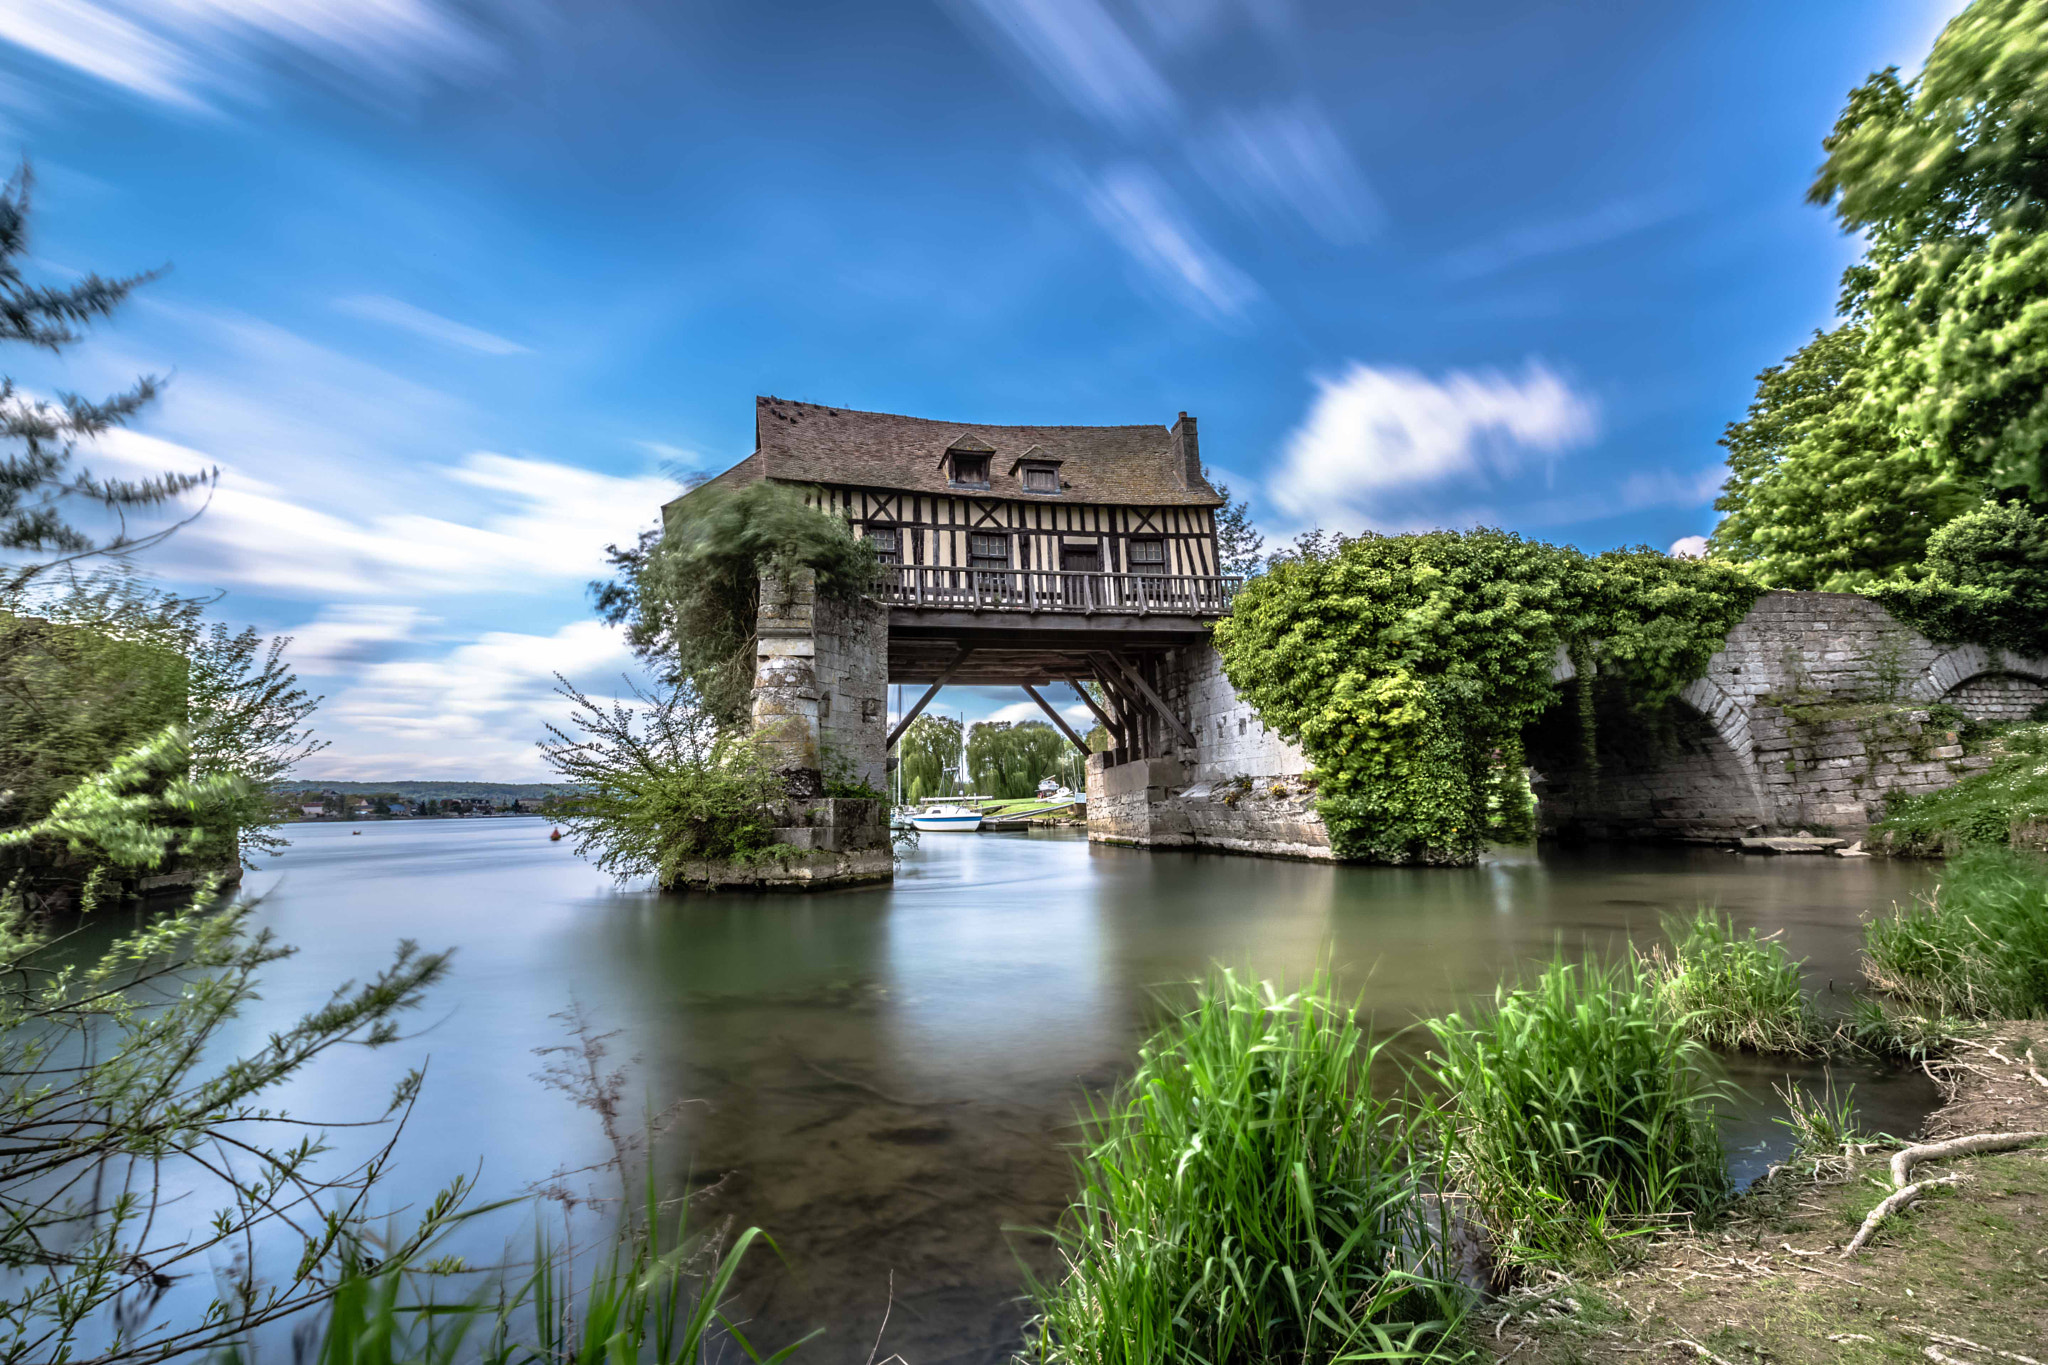 Photograph The old mill, Vernon, Normandy by Europe Trotter on 500px